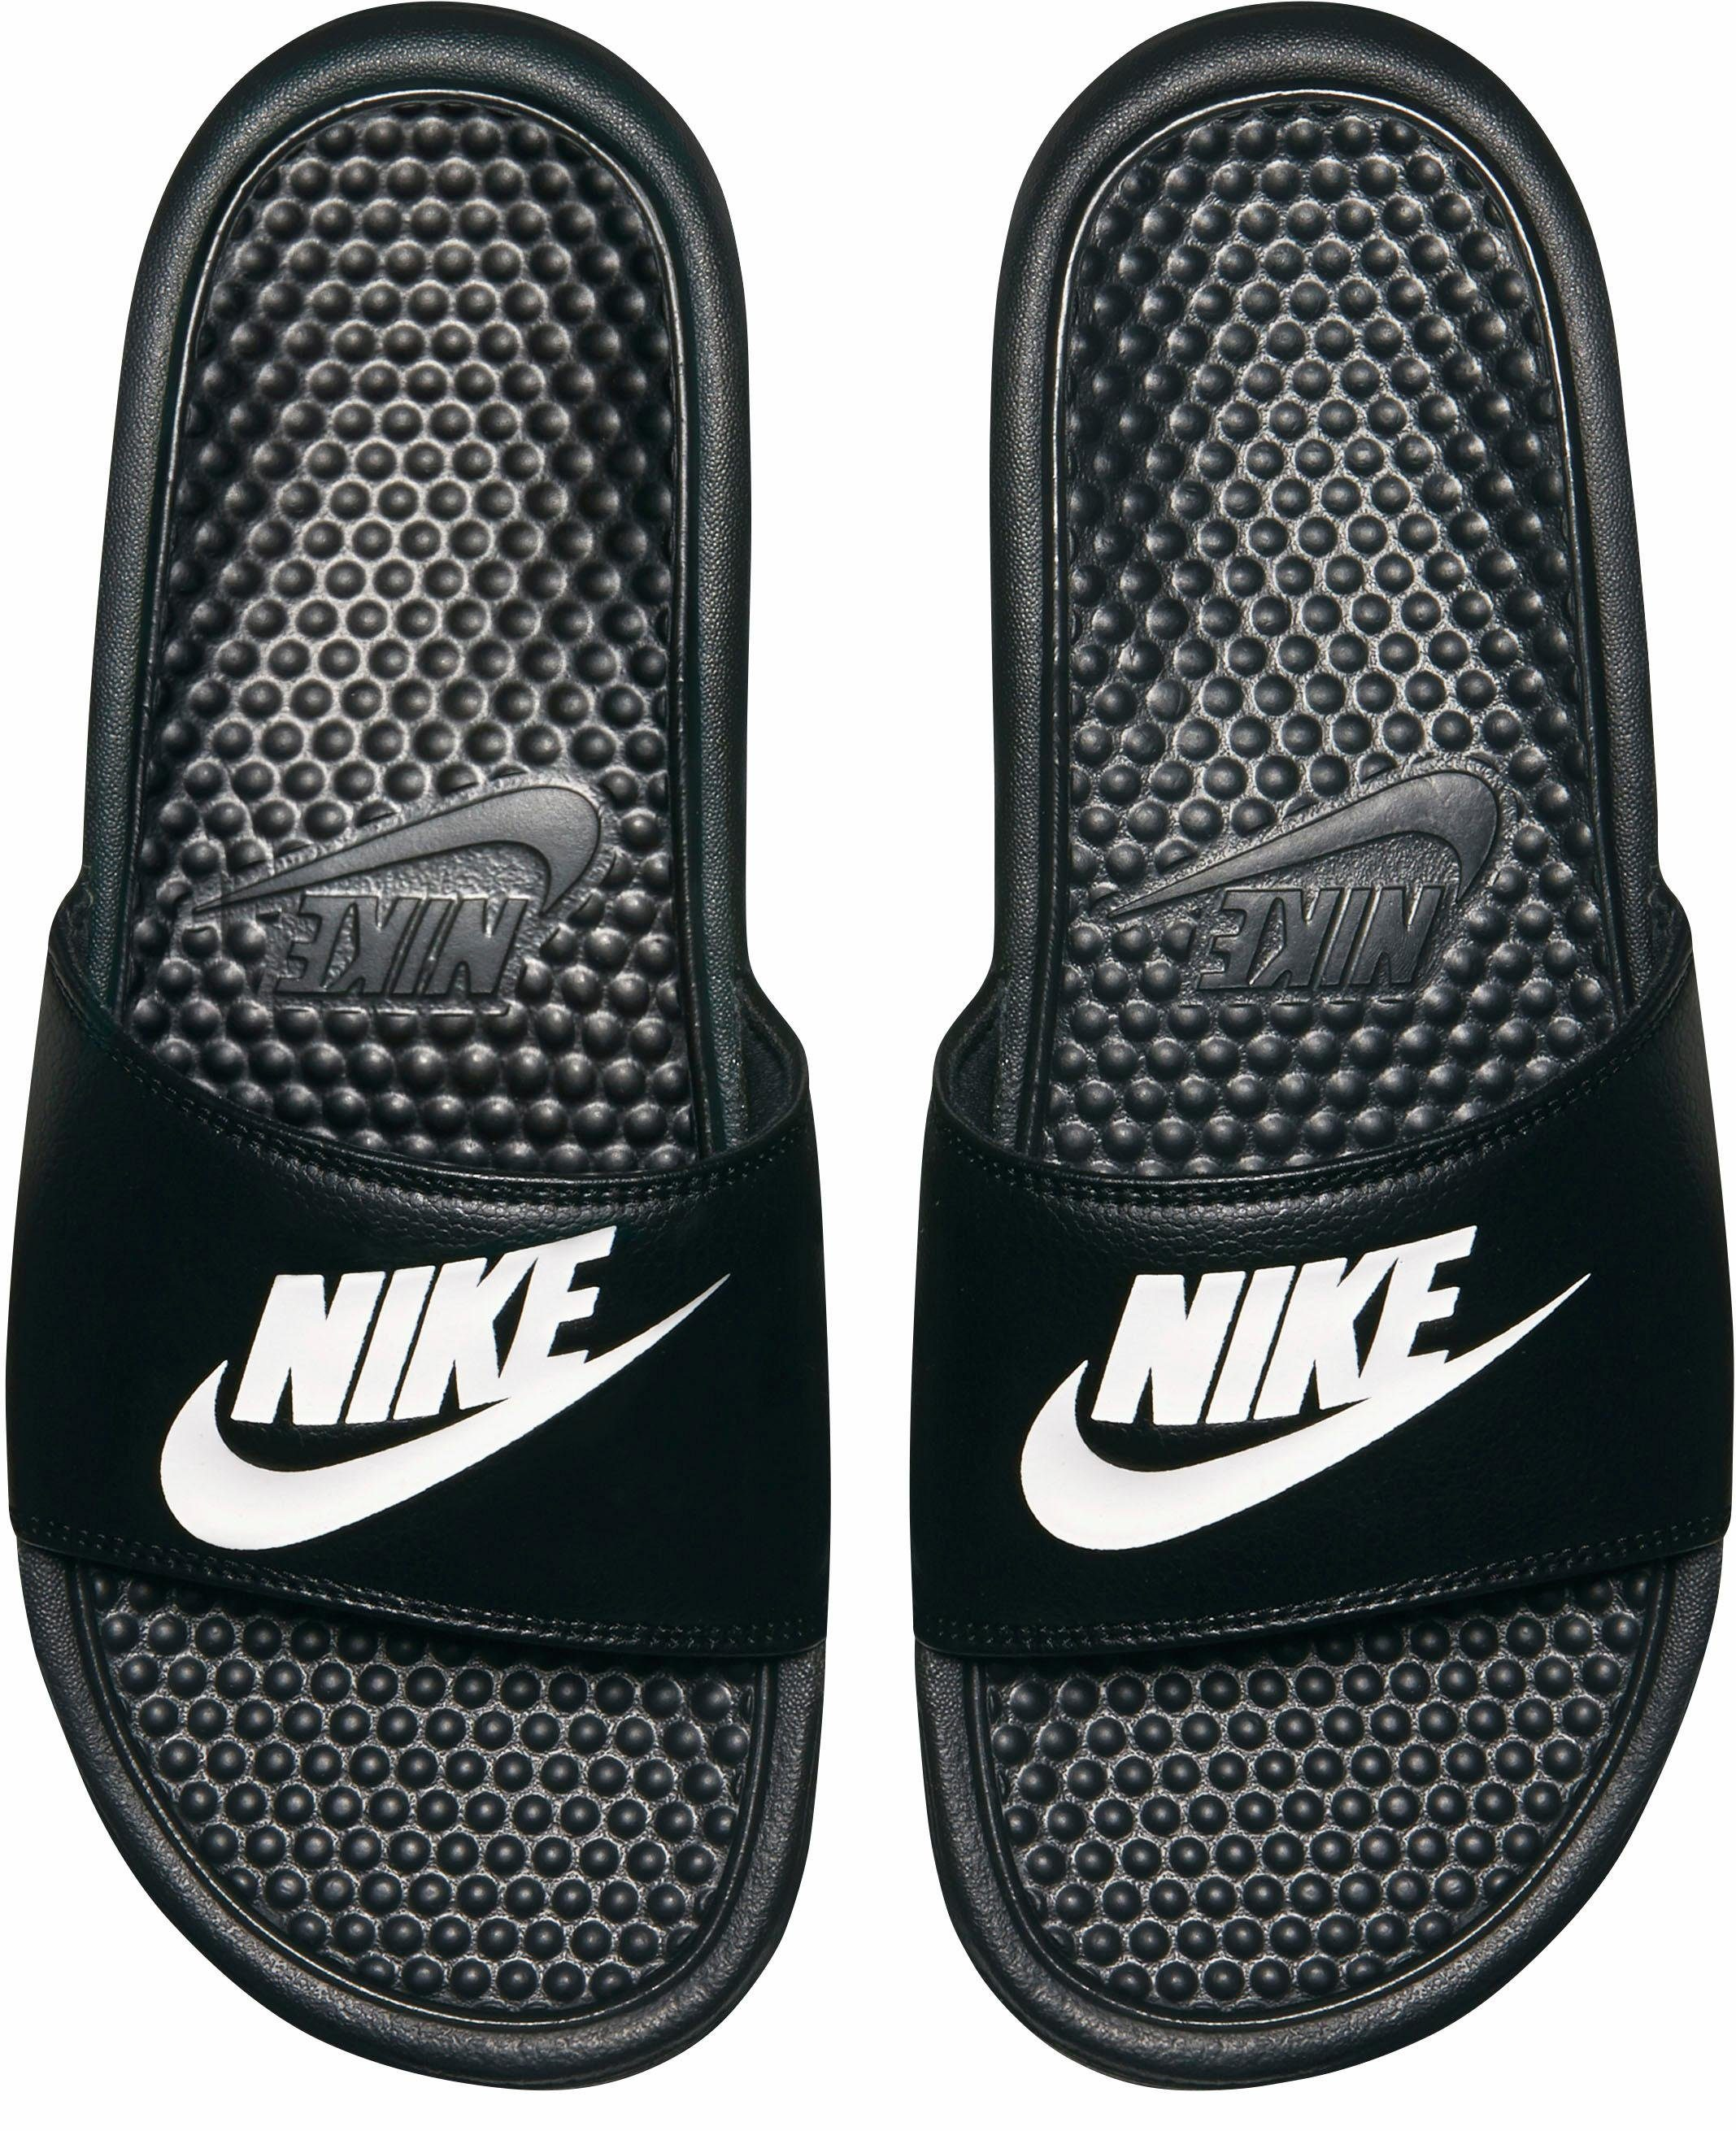 Nike Sportswear »Benassi Just do it« Badesandale | OTTO